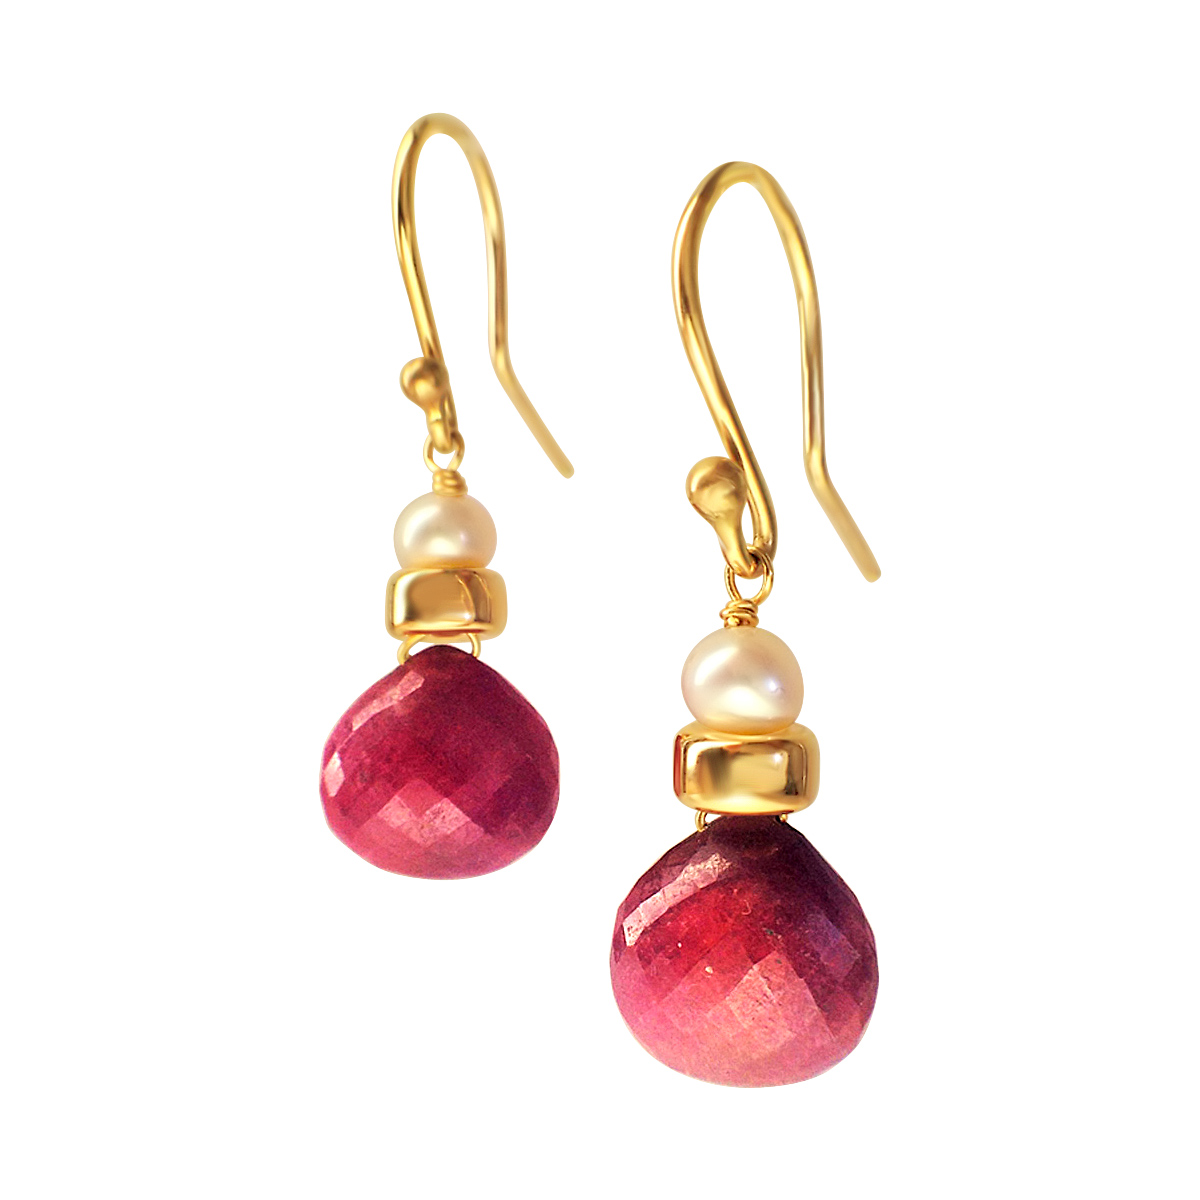 Perfume Bottle pink sapphire gold earrings